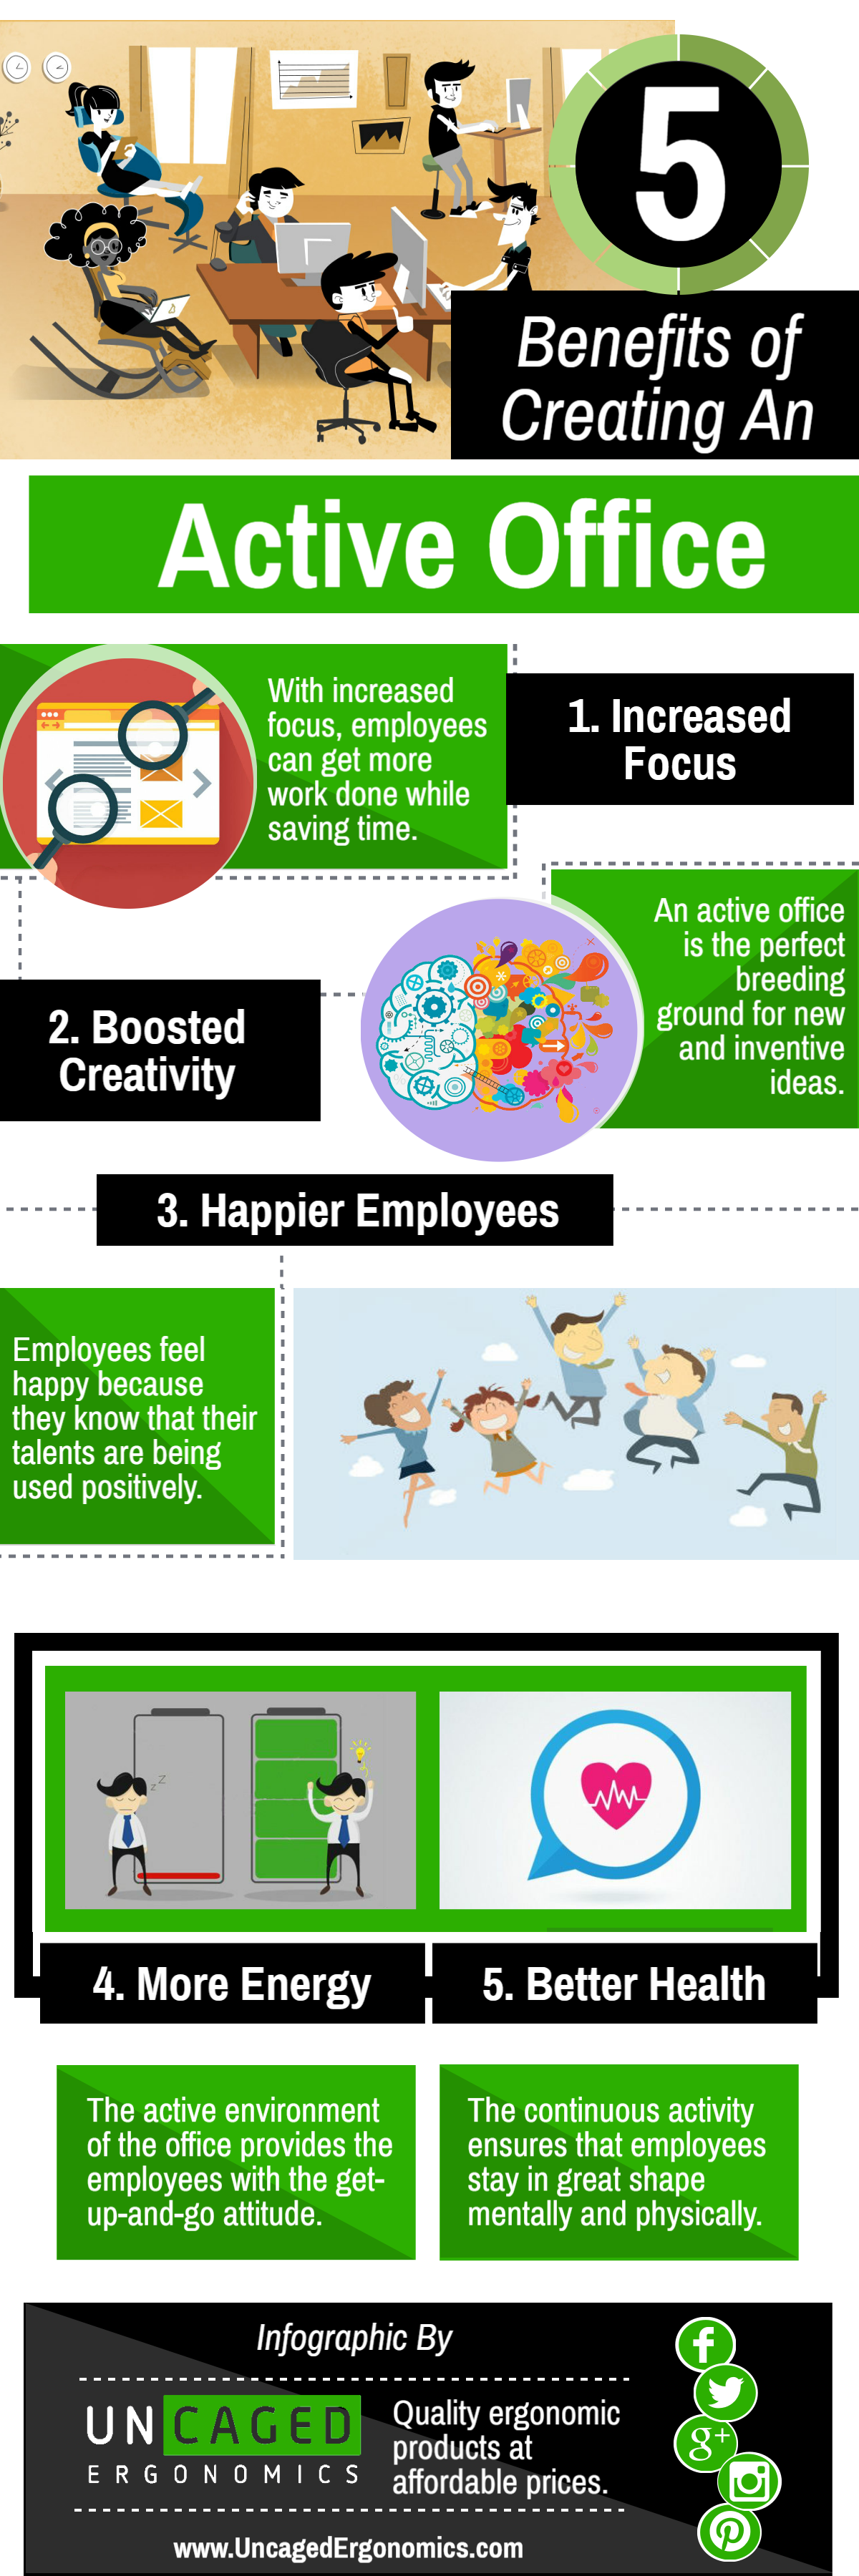 5 Benefits of creating an active office